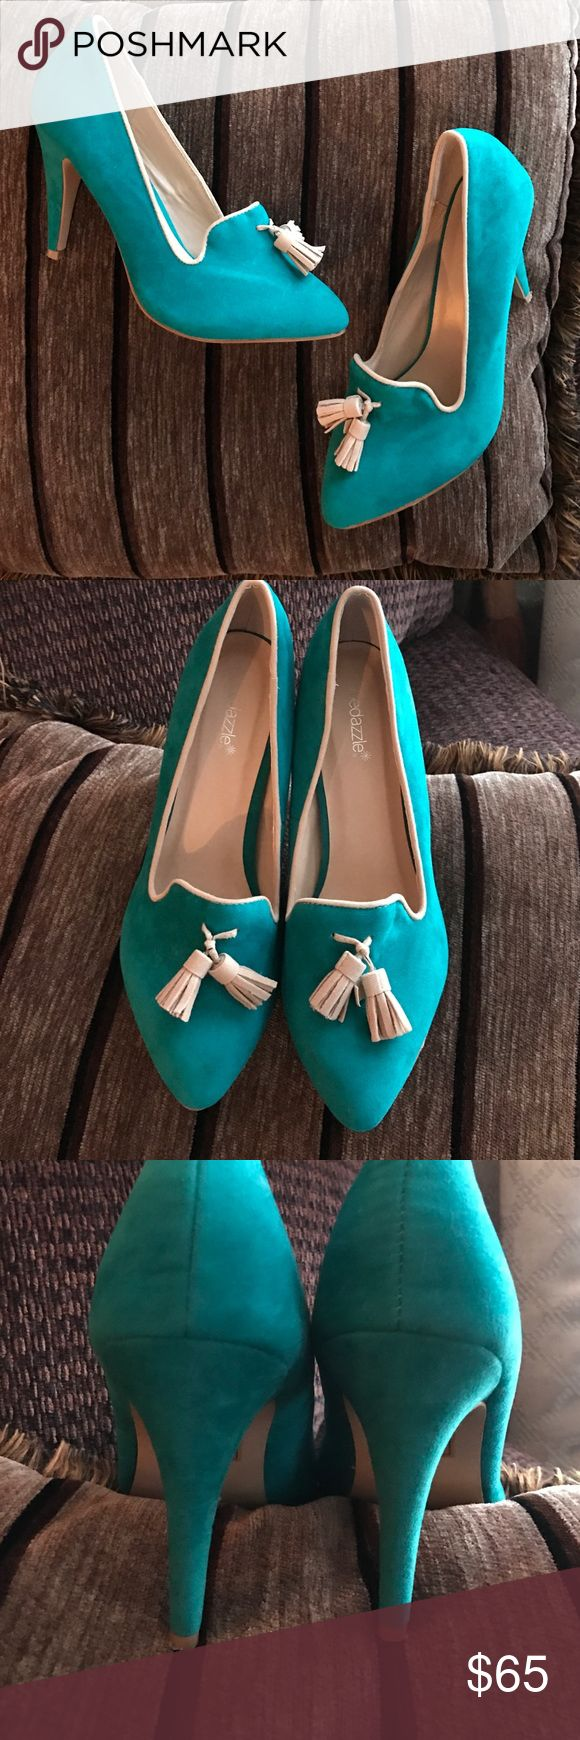 Turquoise boho Tassel Shoe Dazzle low vamp heel Worn once and practically new condition they show no wear  whatsoever on the shoe and only the slightest touch of wear on the sole. Stunning and gorgeous shoes no offers on these please price is firm Shoe Dazzle Shoes Heels